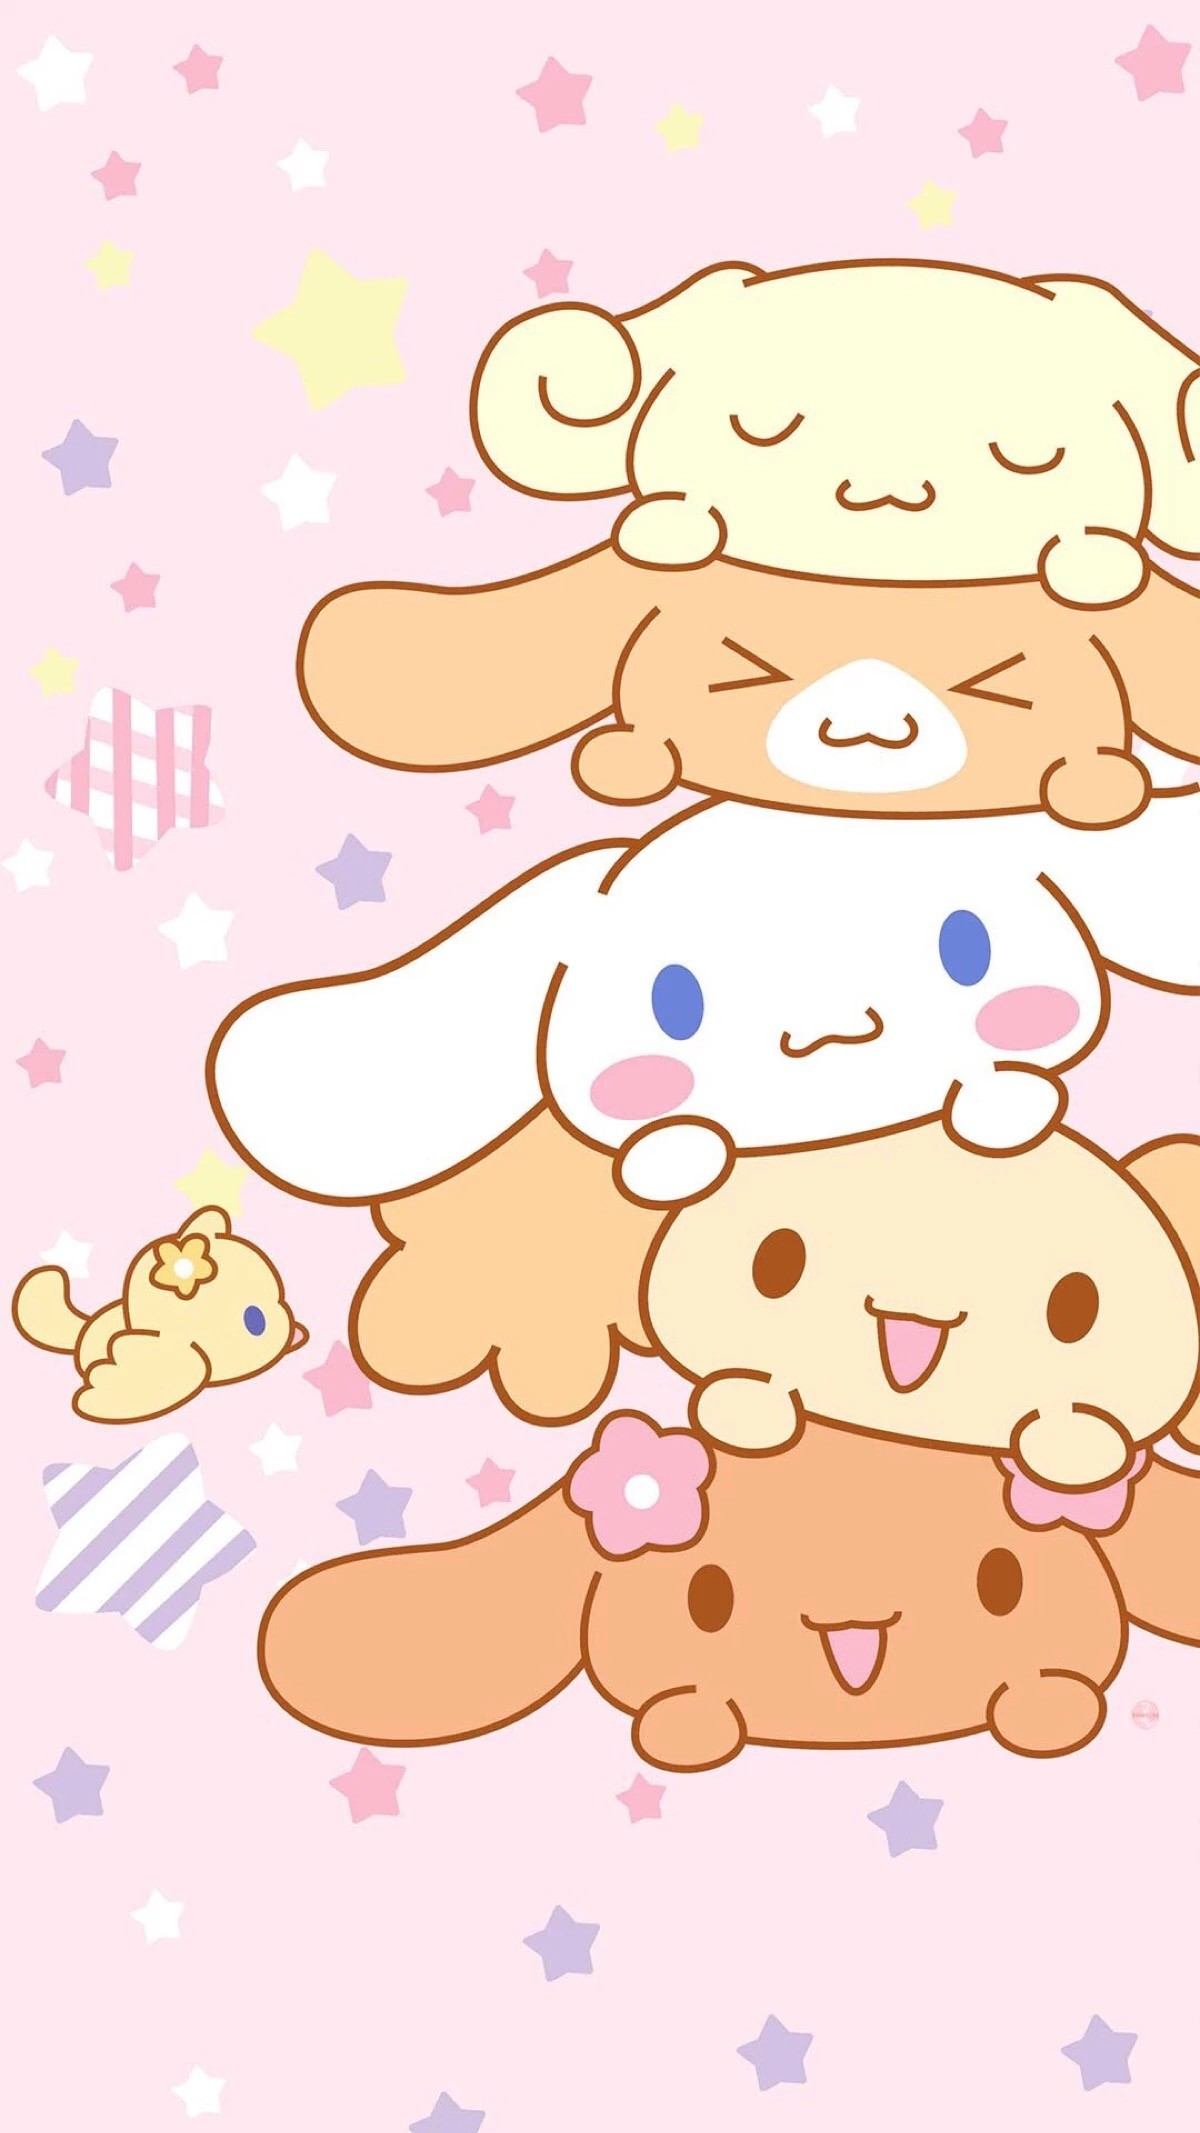 Simple Wallpaper Hello Kitty Iphone - 699347-widescreen-sanrio-pom-pom-purin-and-macaron-wallpaper-1200x2133  You Should Have_266843.jpg